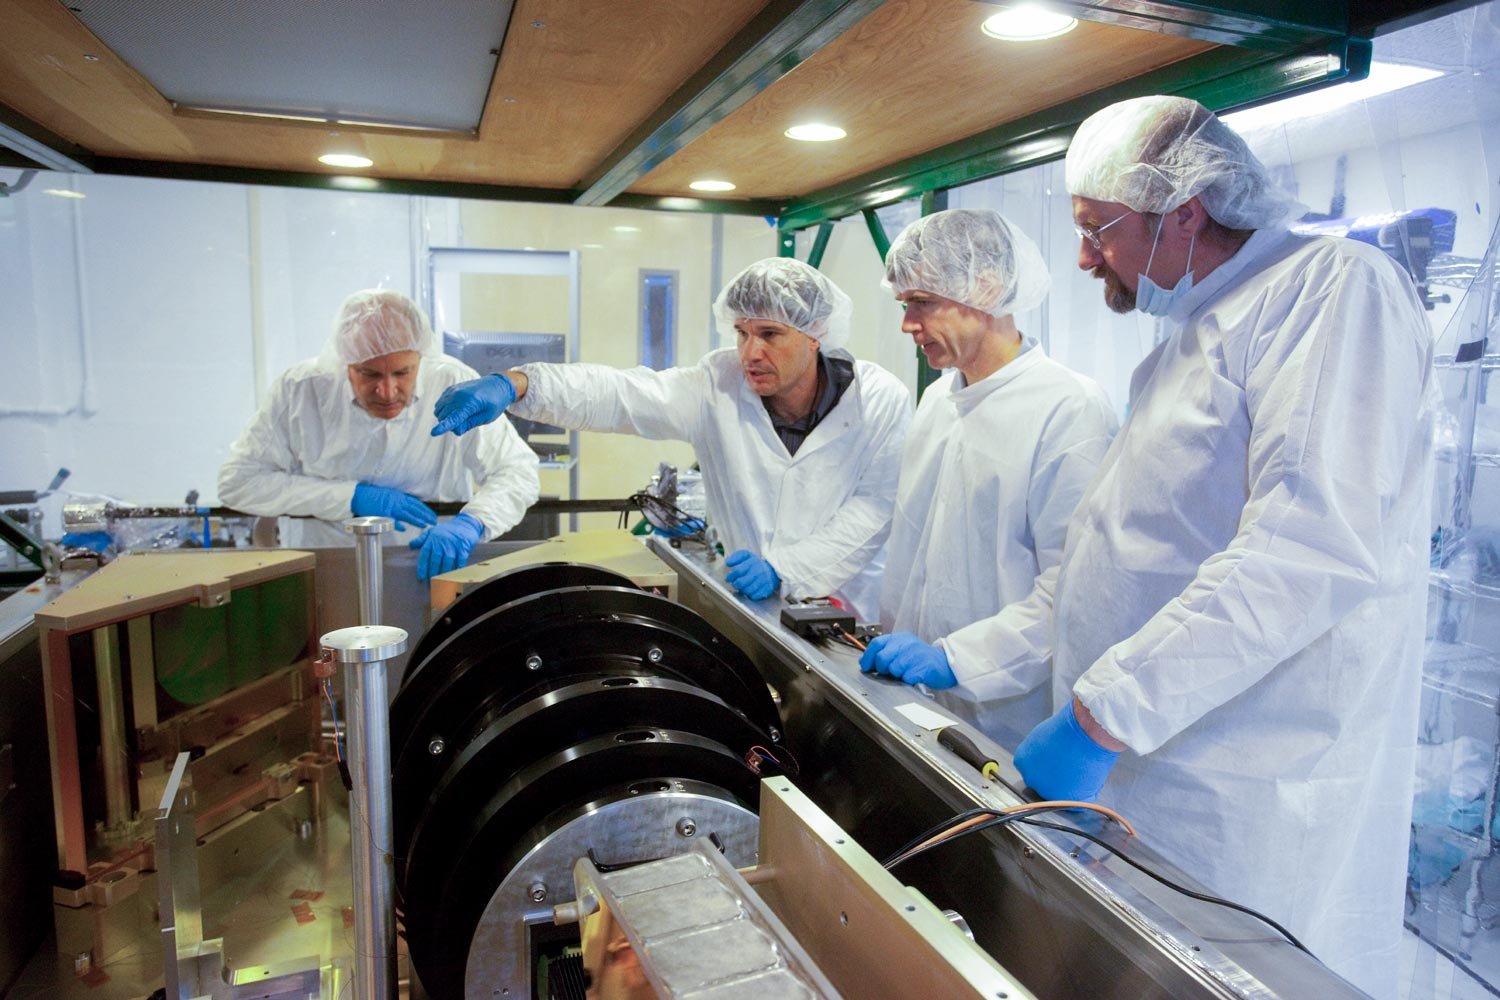 Wilson, second from left, and the UVA APOGEE team with the spectrograph before its final installation in New Mexico. (Photo by Peggy Harrison)